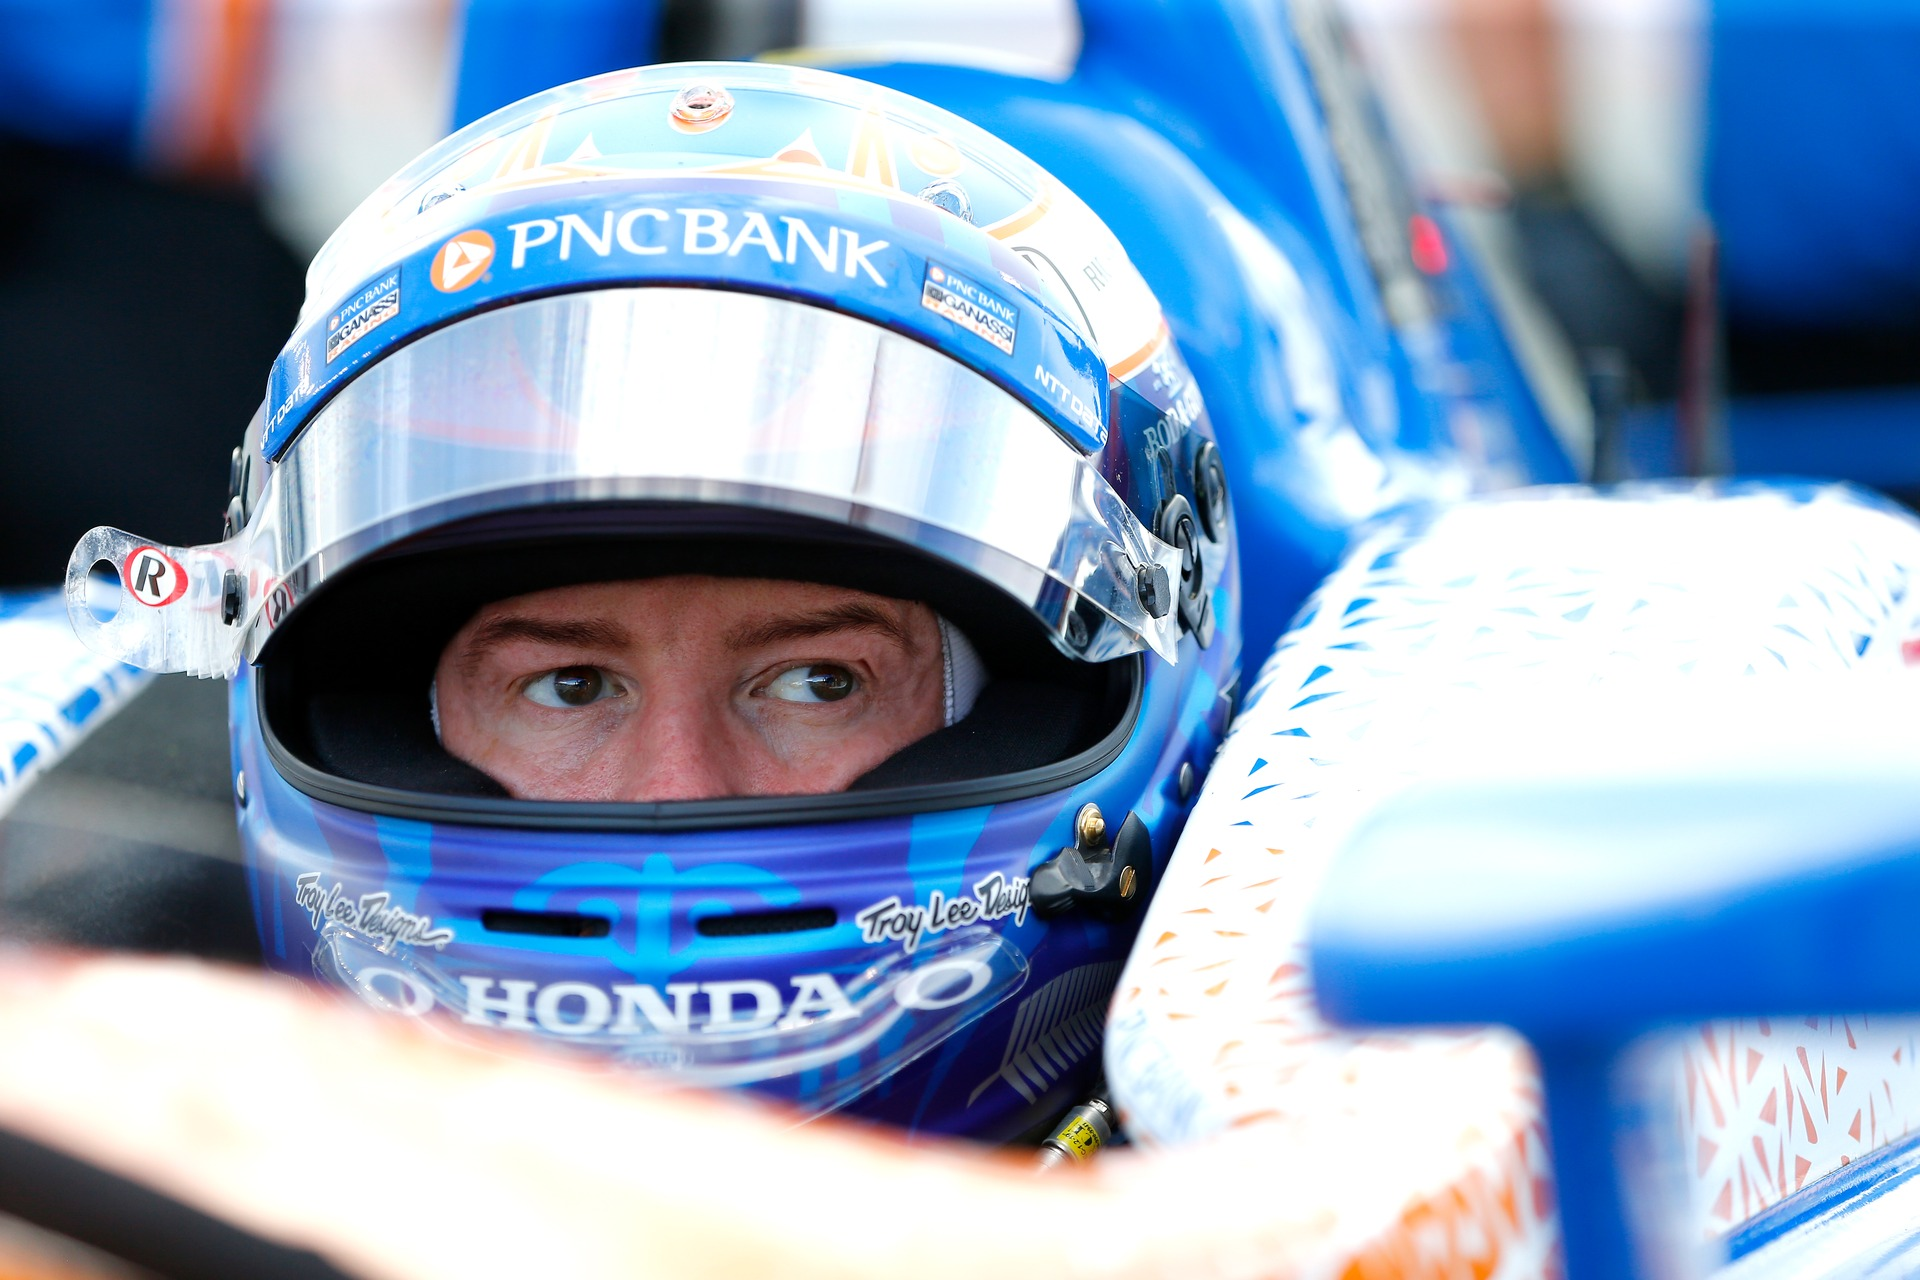 Motorsport: Four reasons Scott Dixon can win IndyCar crown from fourth